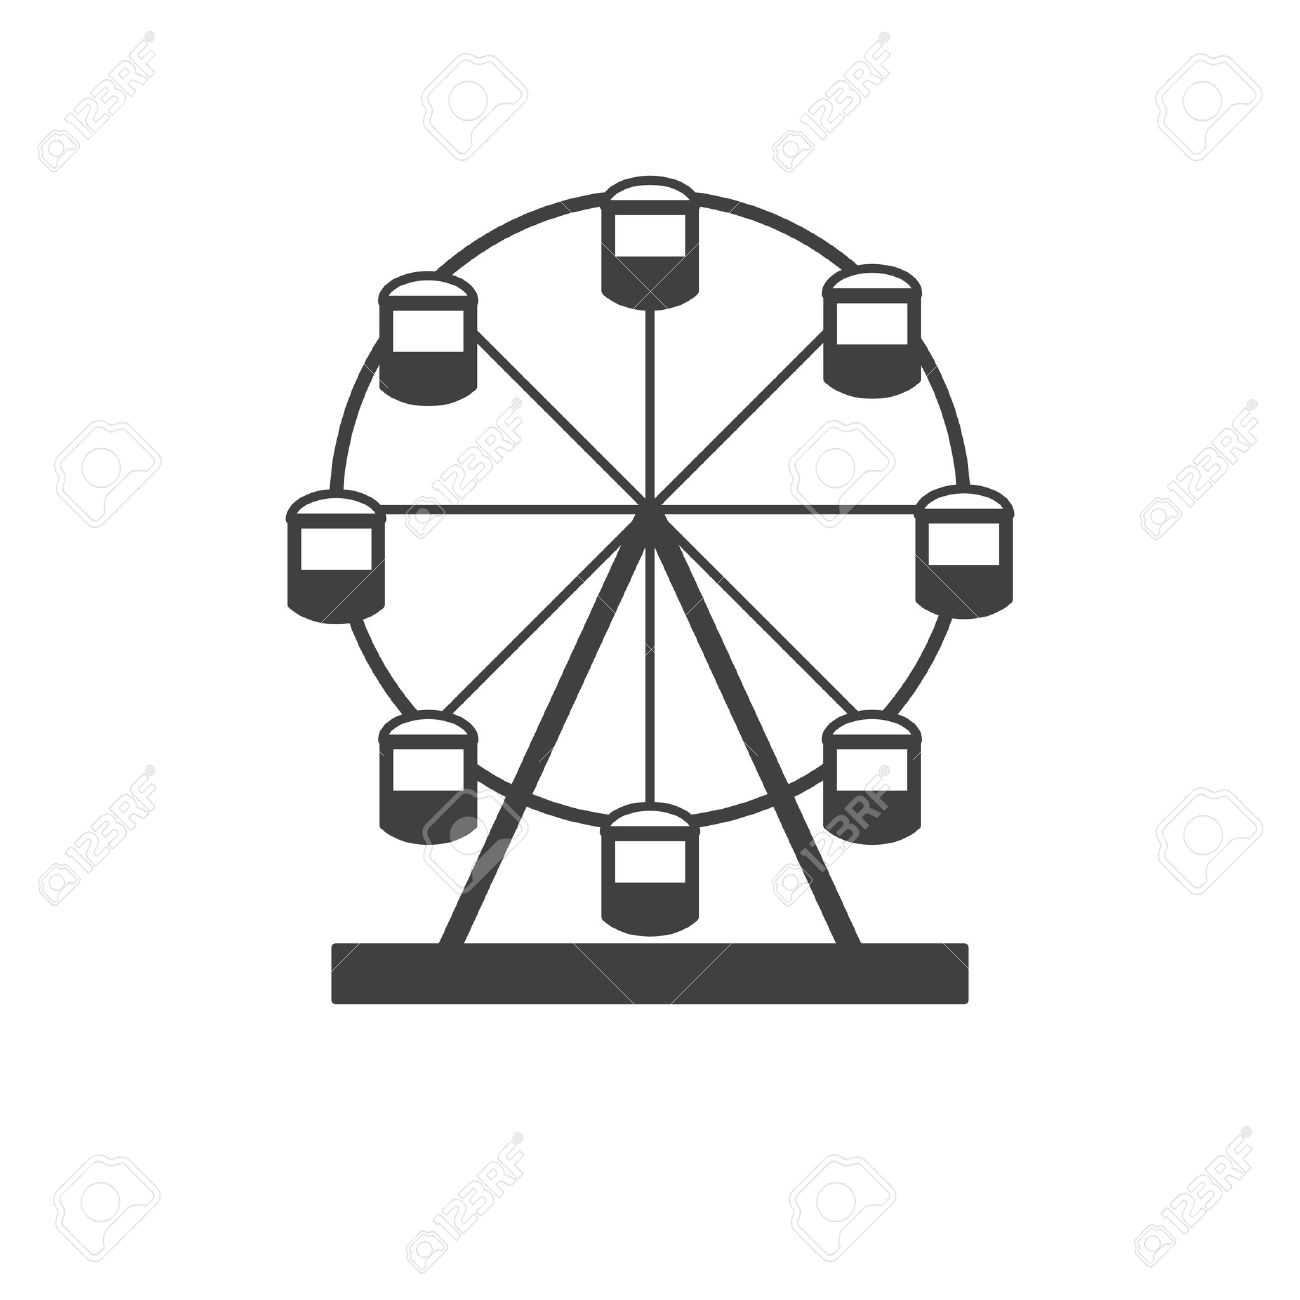 Wheel clipart simple. Ferris drawing free download